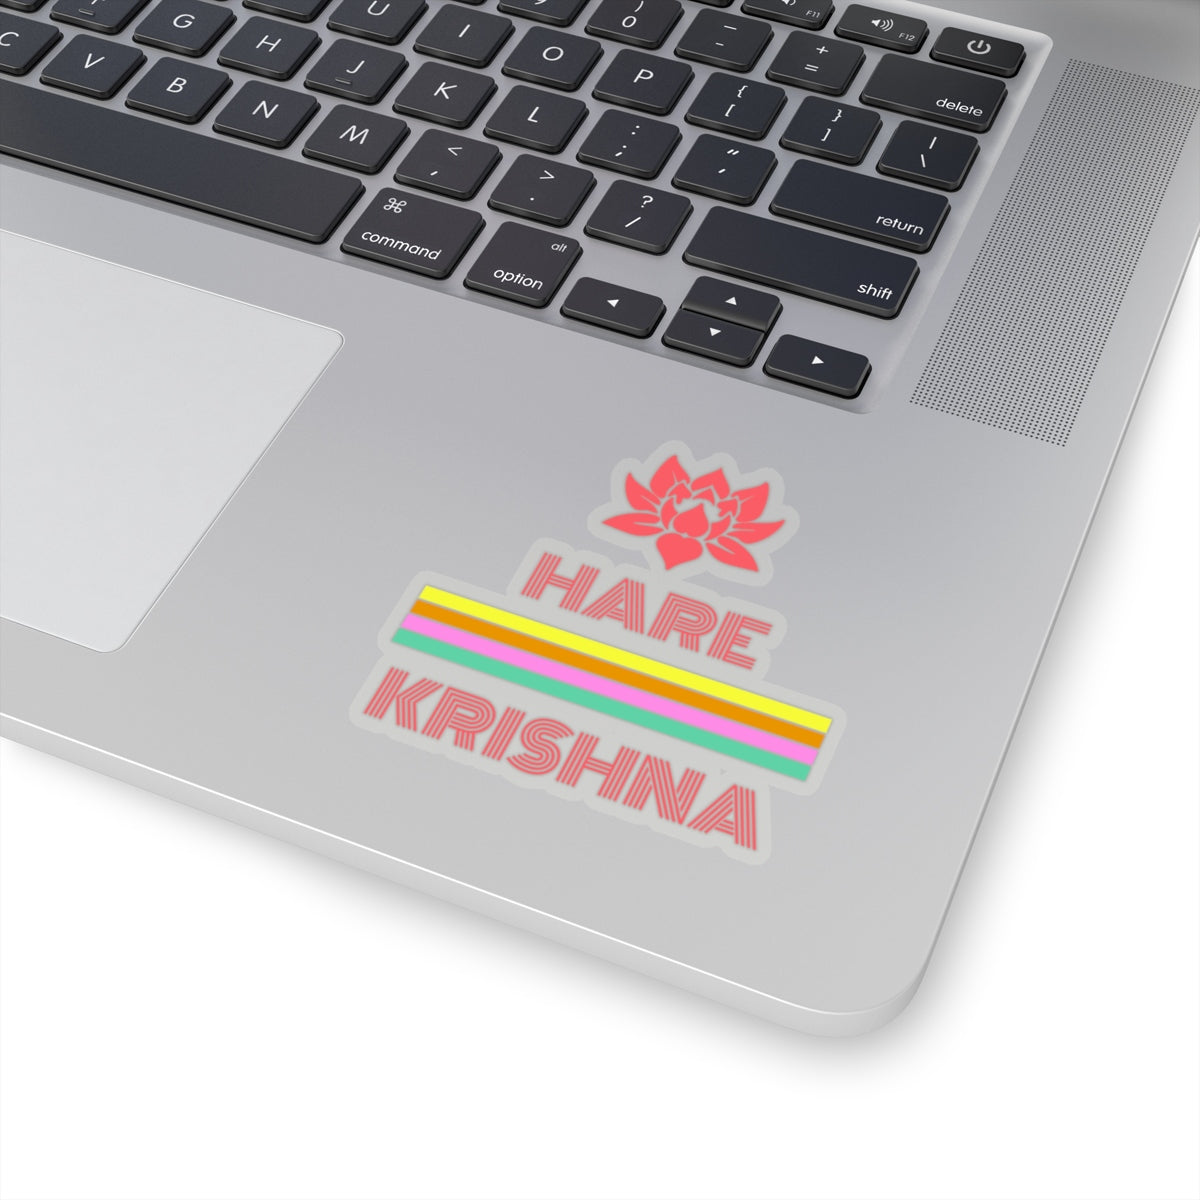 Hare Krishna Kiss-Cut Stickers - DaVatka Fashion